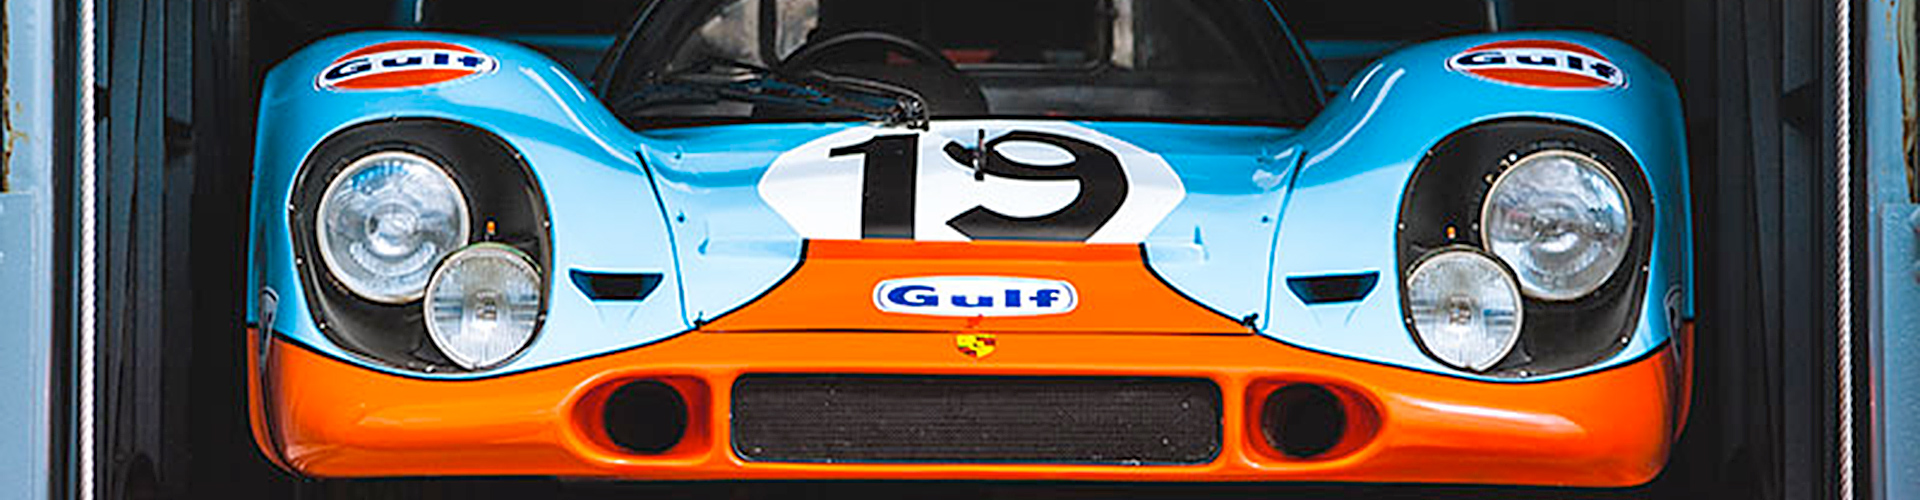 DRIVE // RIDE THE ETR TO LE MANS